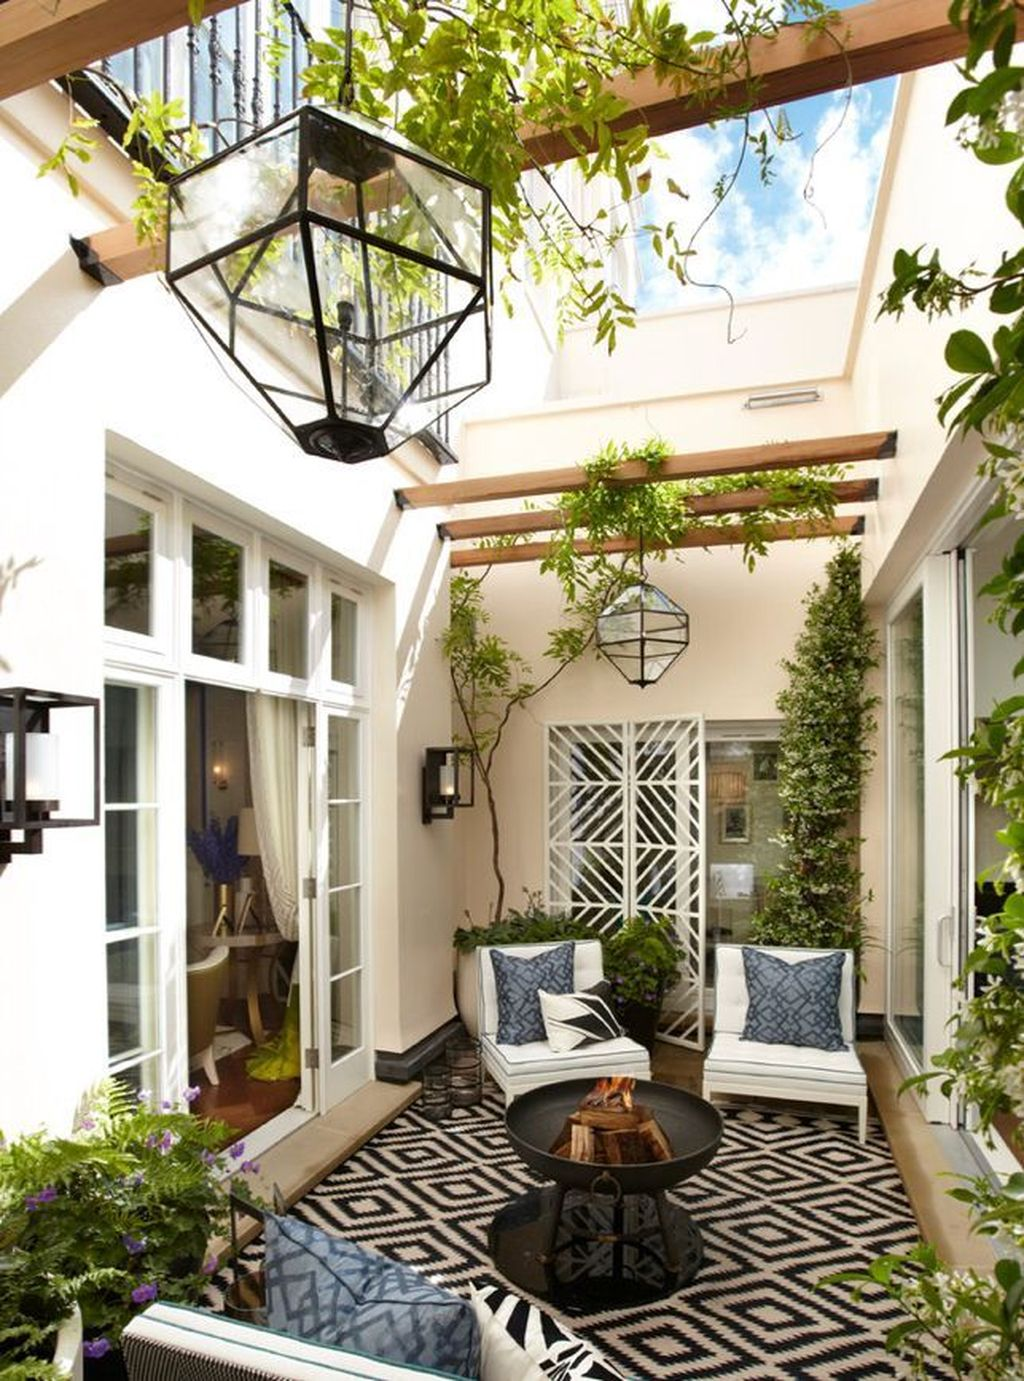 Stunning Rustic Patio Decorating Ideas 14